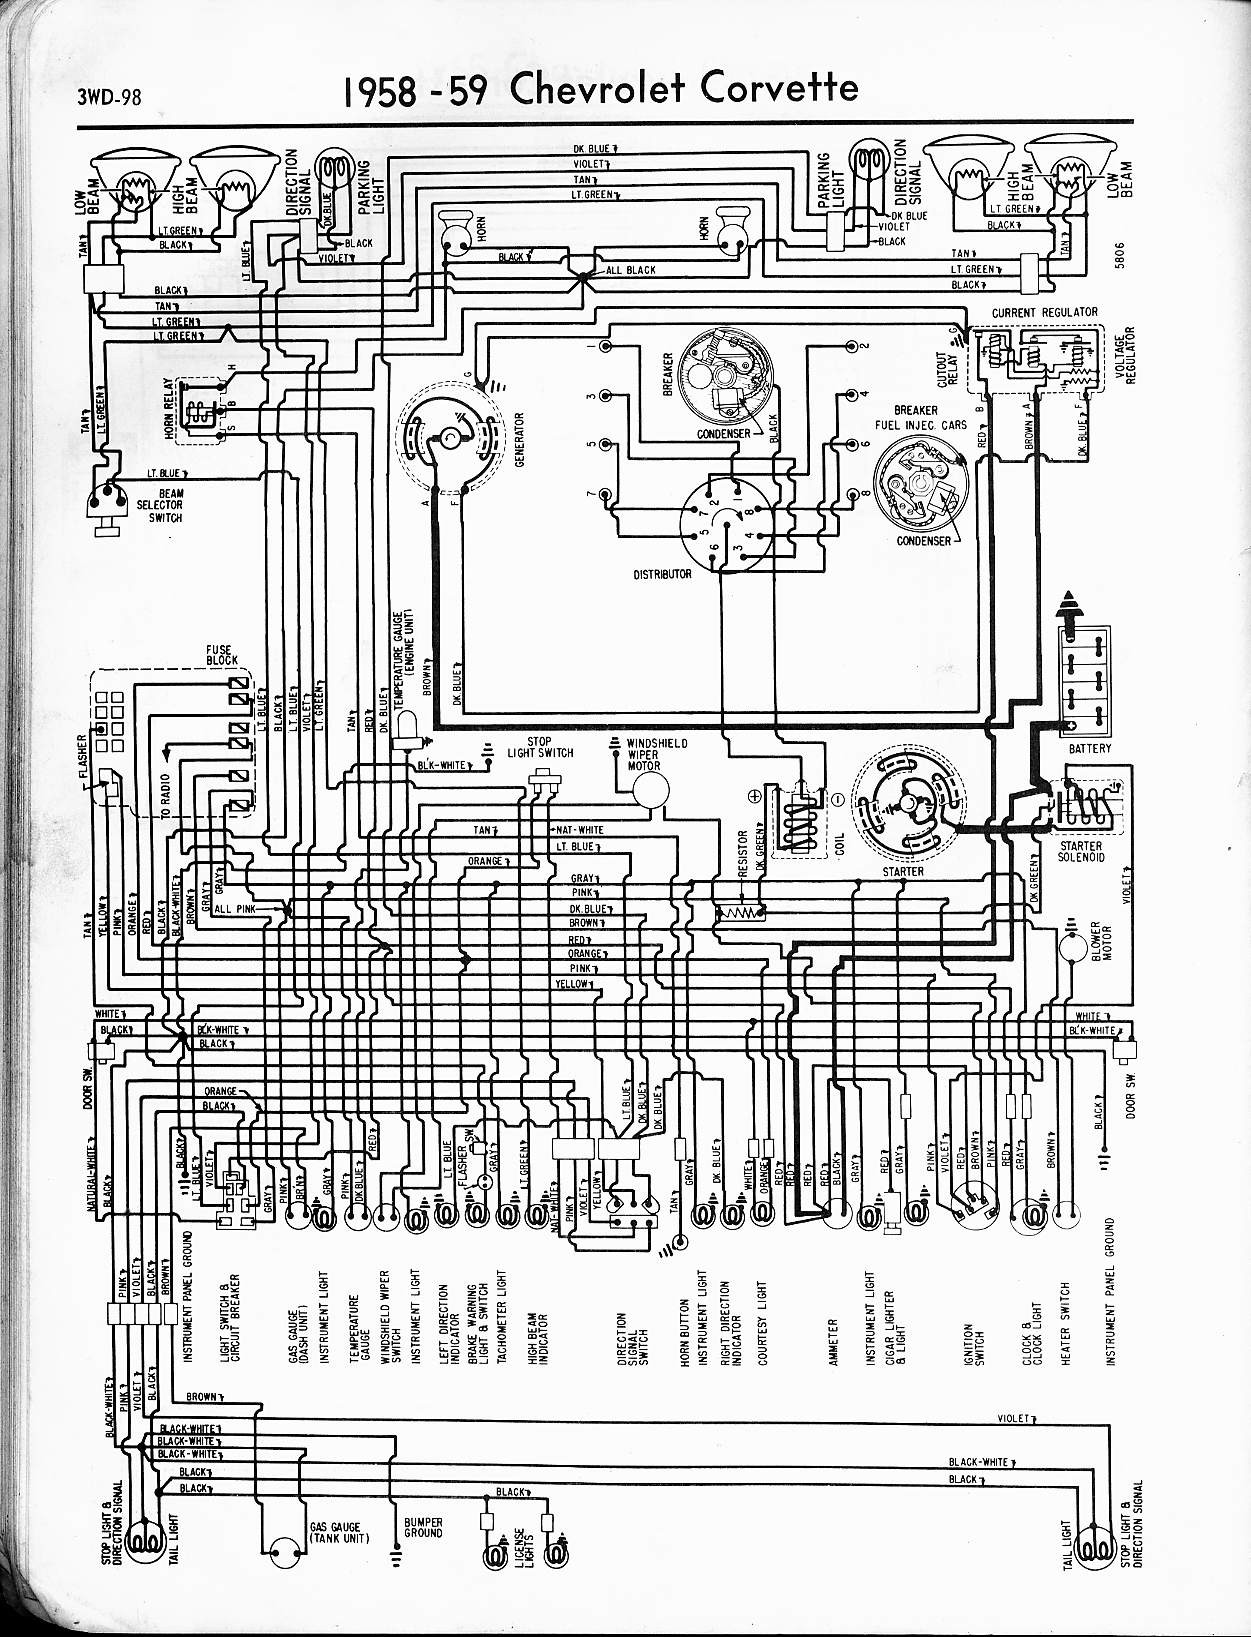 1971 Corvette Wiring Diagram Pdf - Catalogue of Schemas on 1984 corvette wiring schematic, 1967 corvette wiring schematic, 1968 corvette wiring schematic, 1980 corvette wiring schematic, 2001 corvette wiring schematic, 1982 corvette wiring schematic, 1979 corvette wiring schematic, 1985 corvette wiring schematic, 1987 corvette wiring schematic, 1981 corvette wiring schematic, 1963 corvette wiring schematic, 1961 corvette wiring schematic, 1966 corvette wiring schematic, 1973 corvette wiring schematic, 1969 corvette wiring schematic, 68 corvette wiring schematic, 1978 corvette wiring schematic, 1976 corvette wiring schematic, 1972 corvette wiring schematic, 1975 corvette wiring schematic,